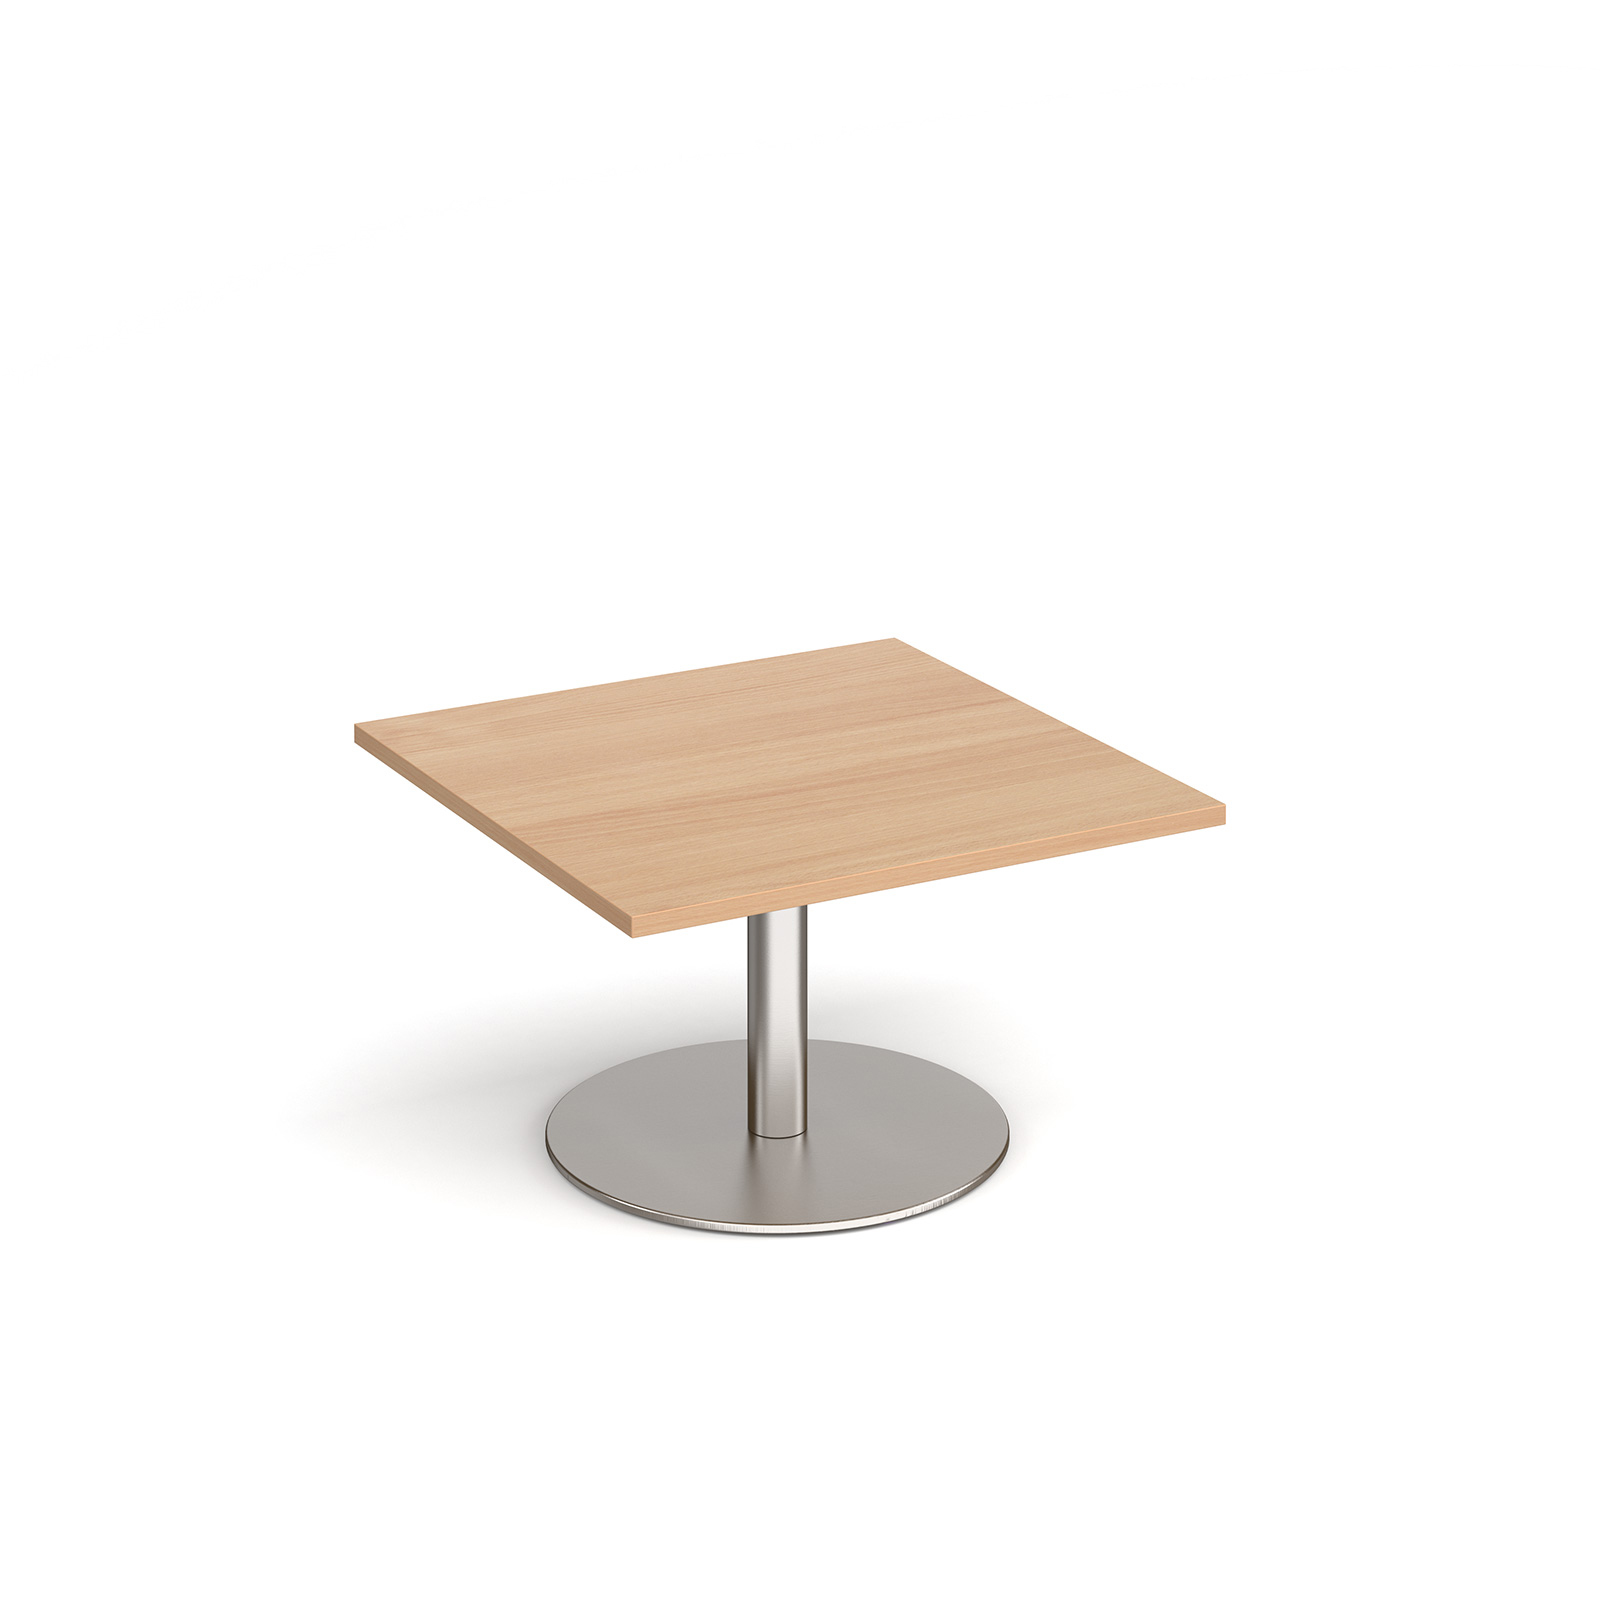 Coffee Monza square coffee table with flat round base